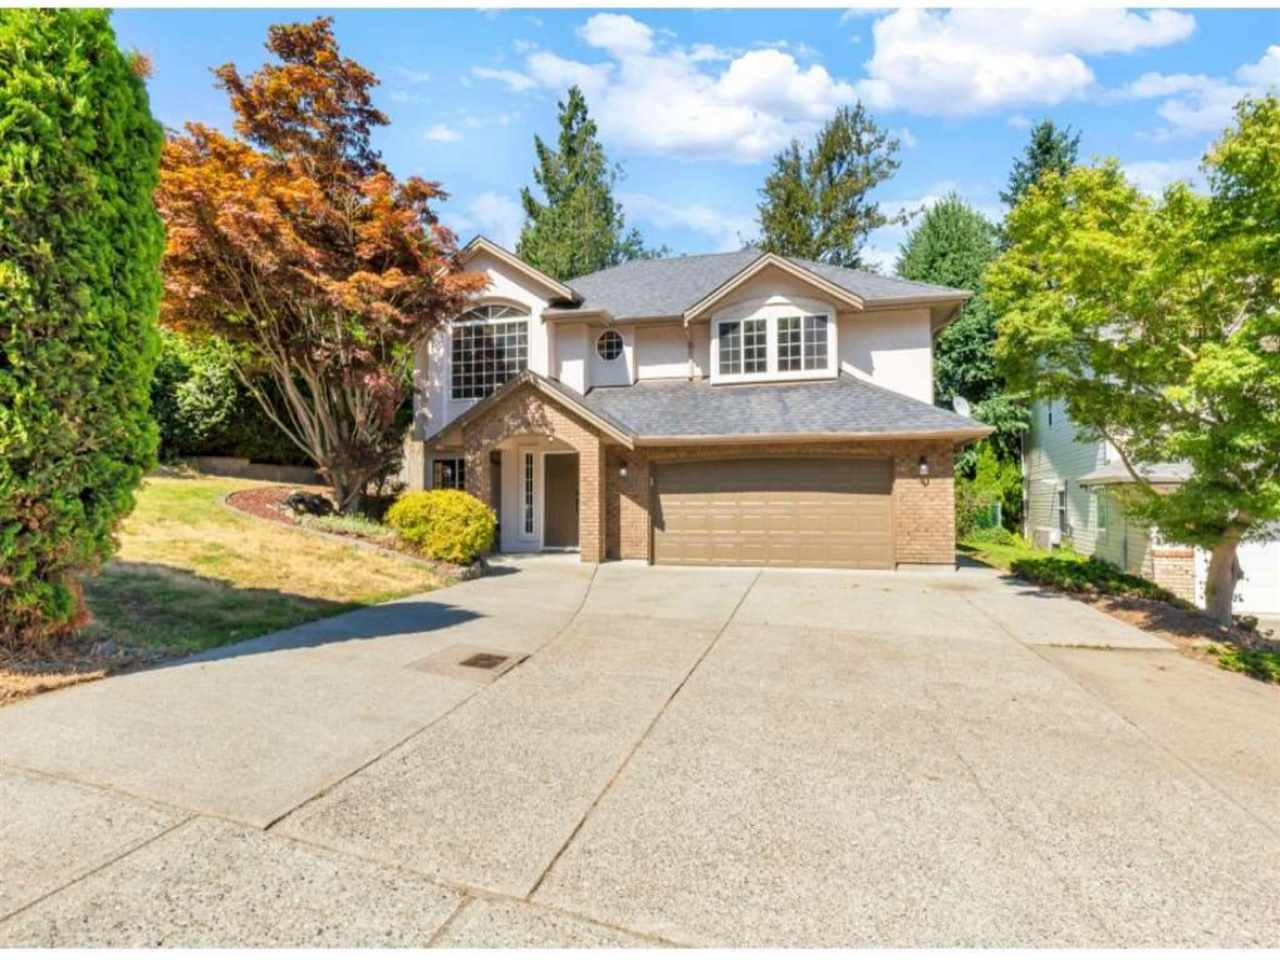 2462 WHATCOM ROAD - Abbotsford East House/Single Family for sale, 4 Bedrooms (R2589067)